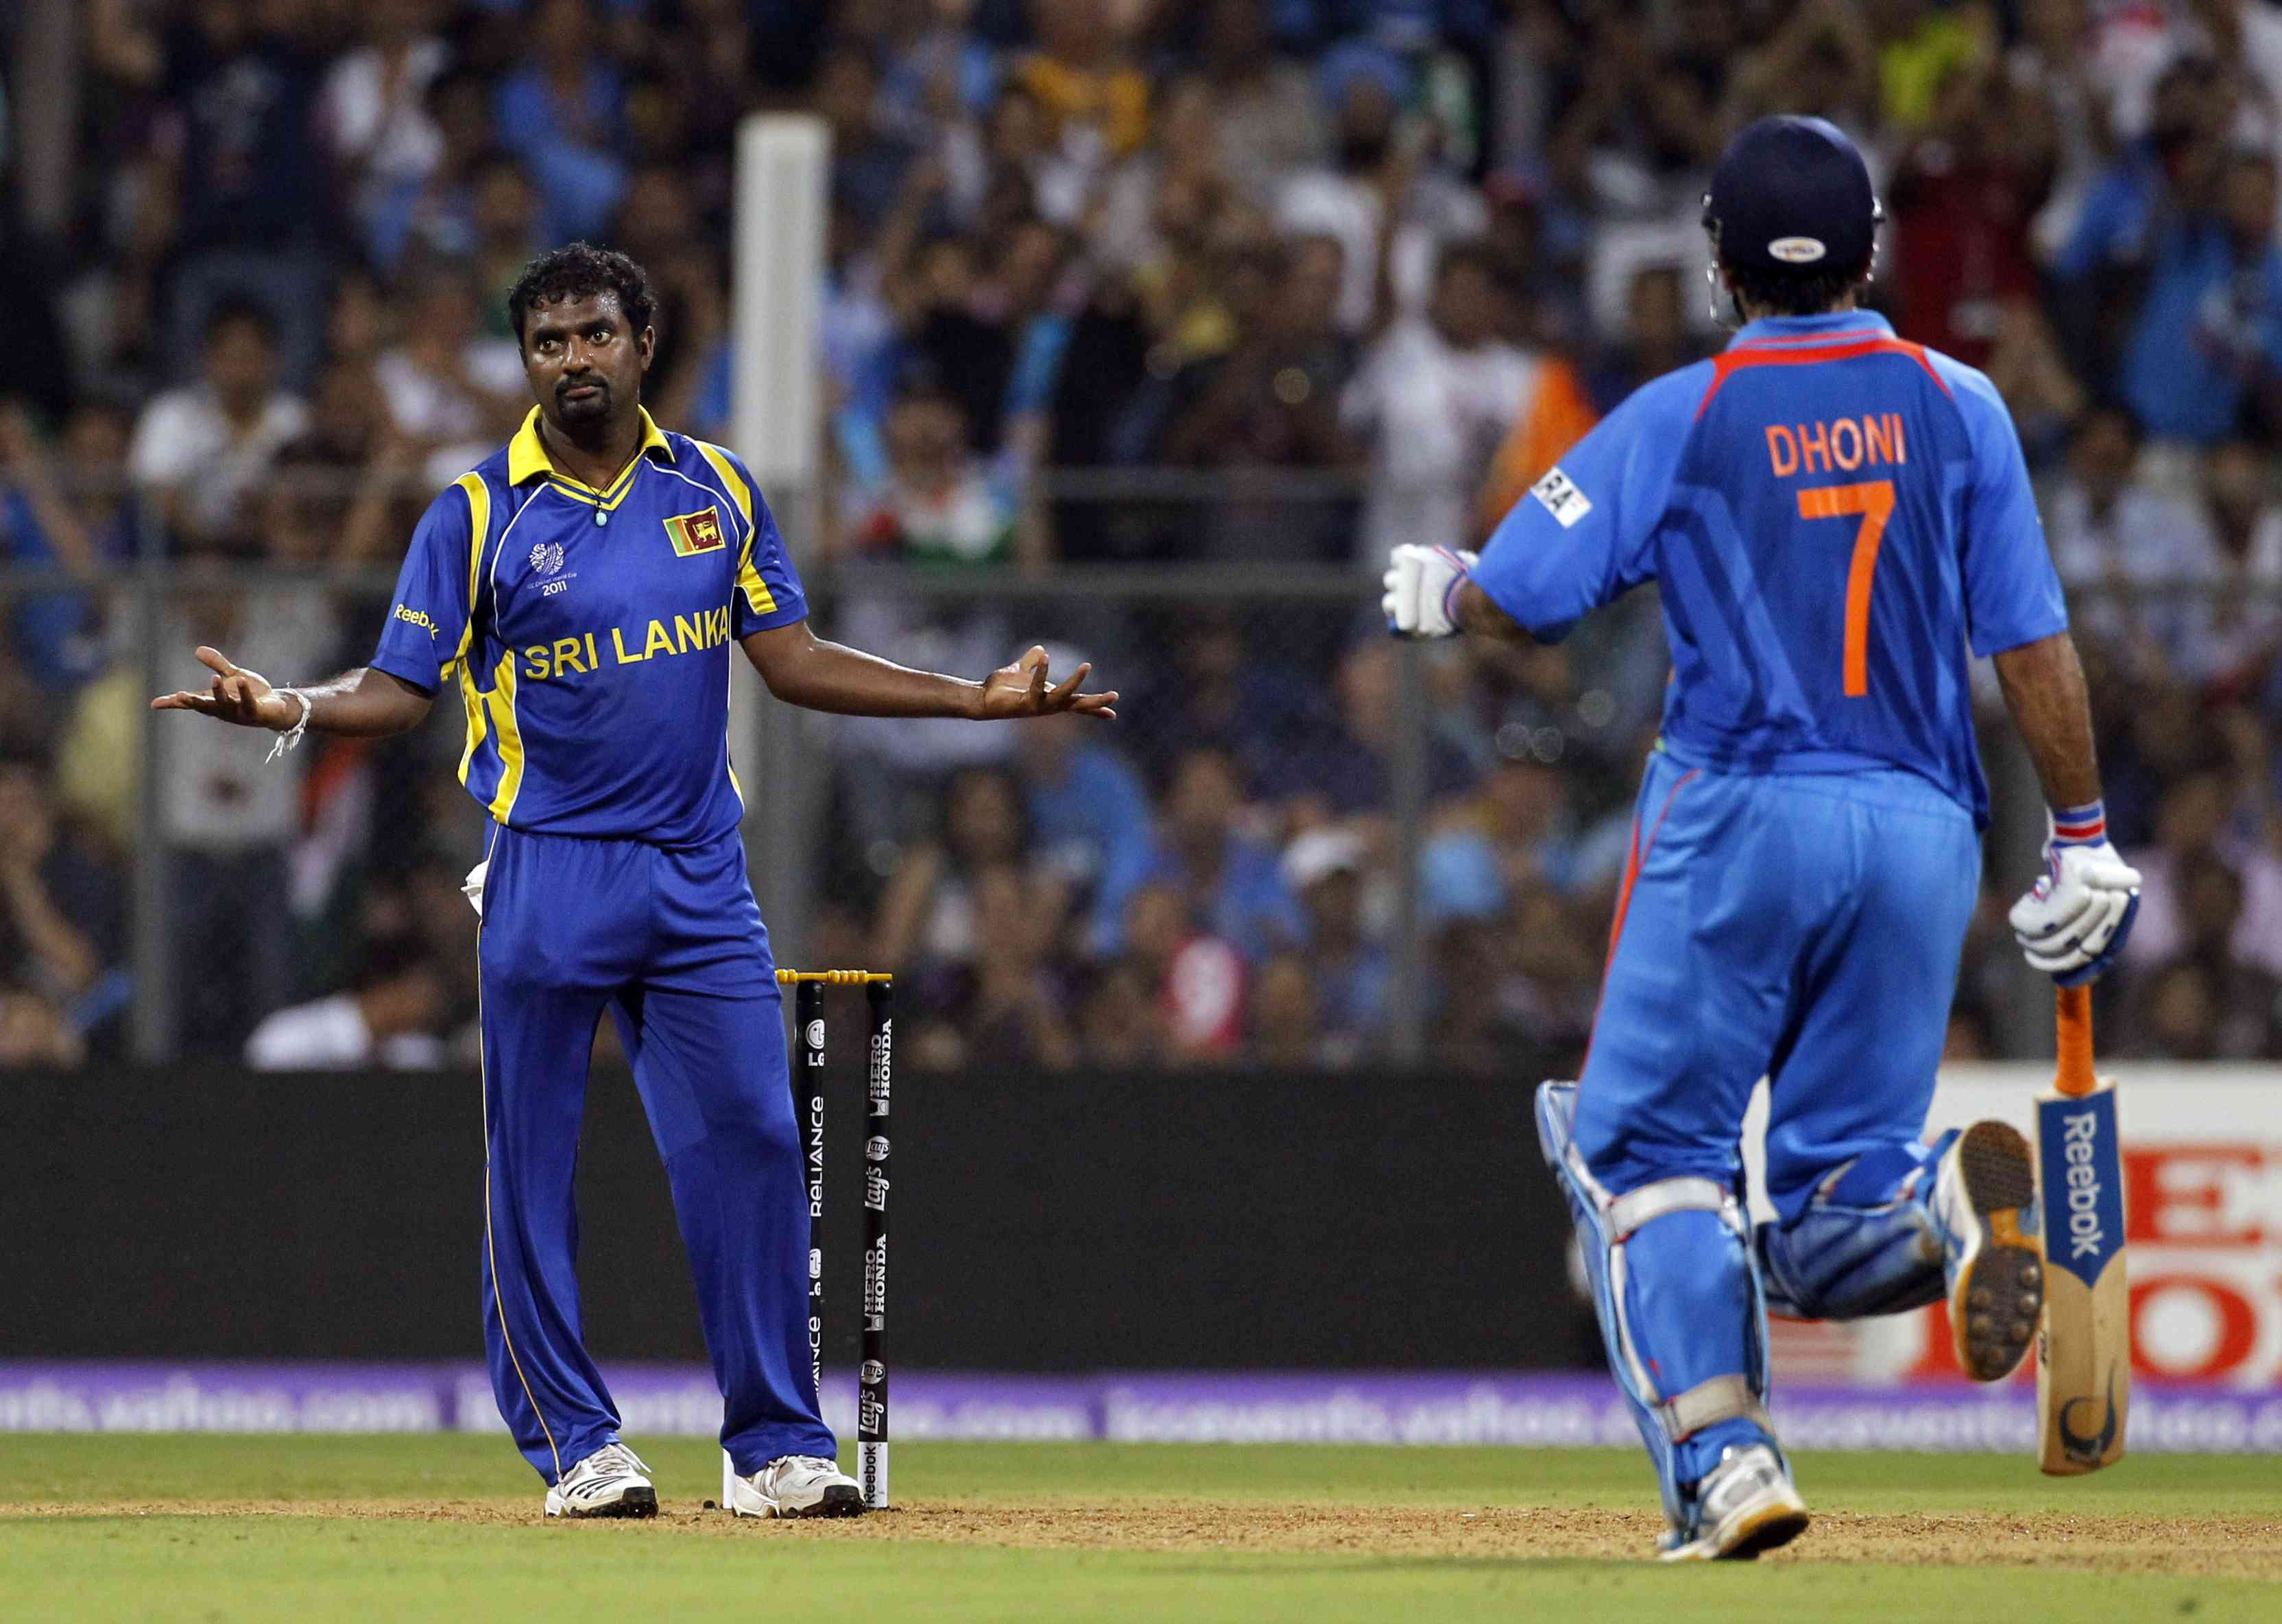 Spin ace Muttiah Muralidaran reacts as MS Dhoni countered him in style| Image credit: Vivek Prakash/Reuters